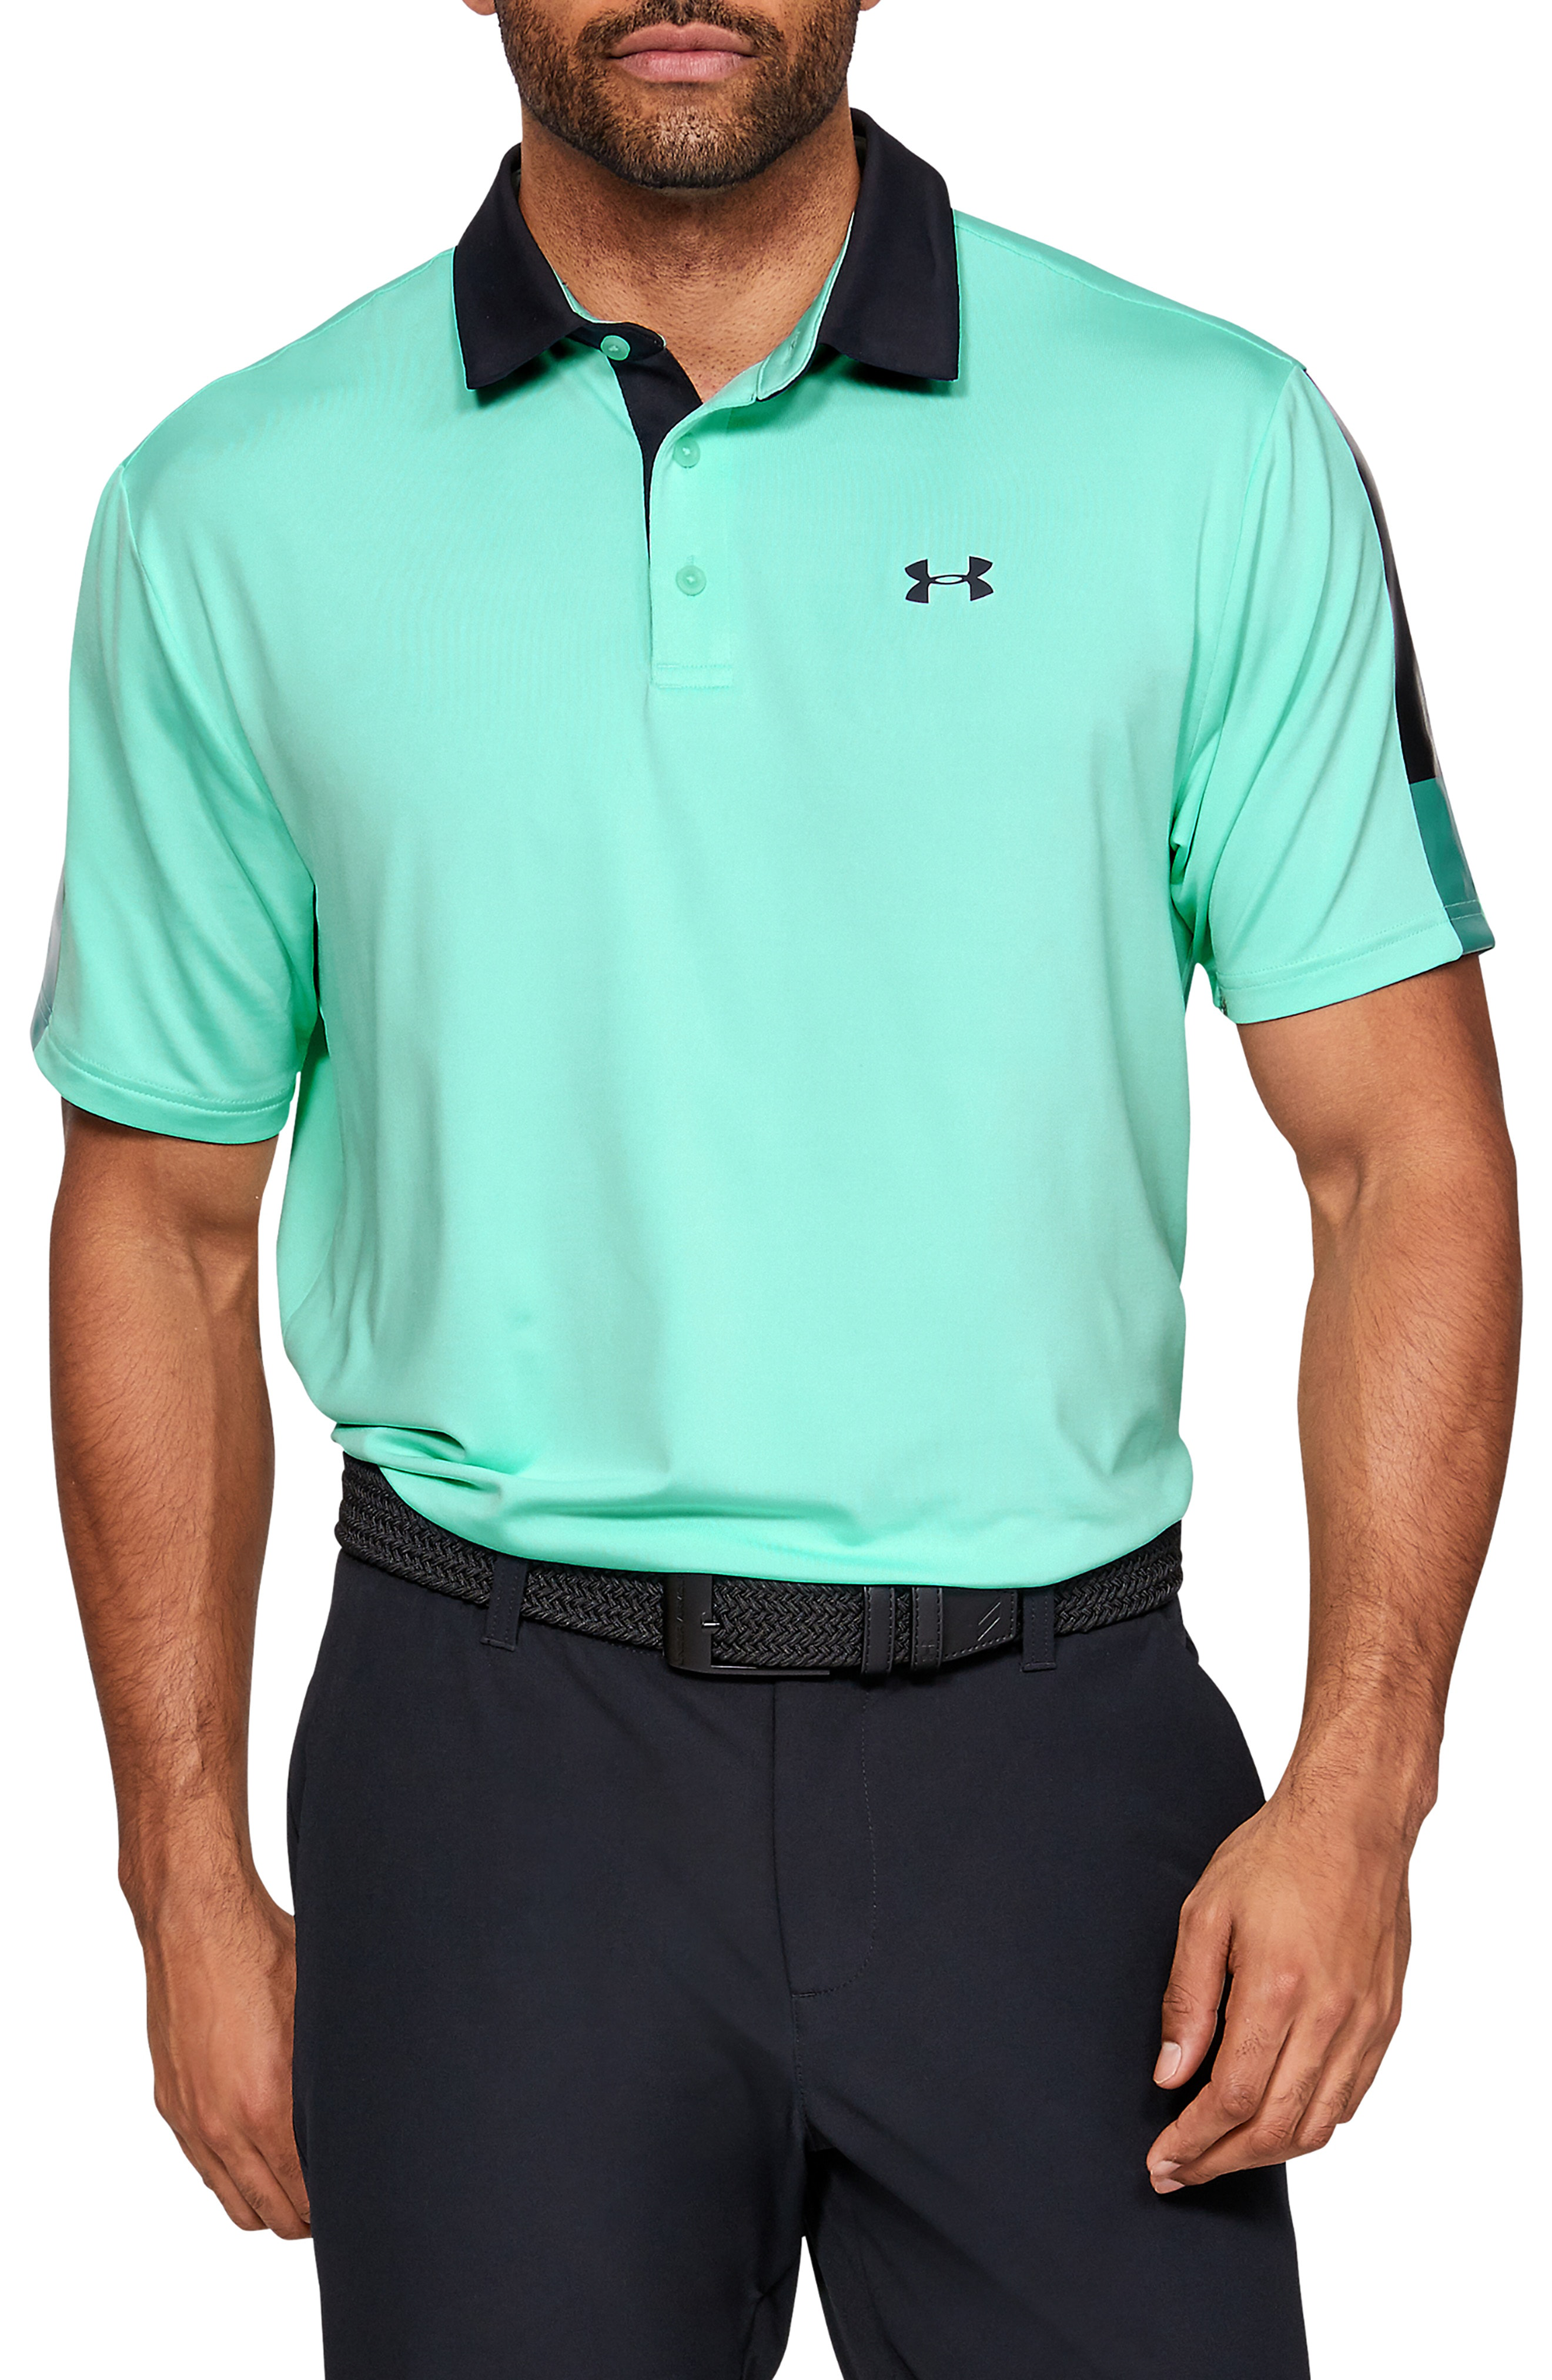 3415546a9 ... Under Armour Playoff 2.0 Loose Fit Polo. Style Number  5672736.  Available in stores. Available From